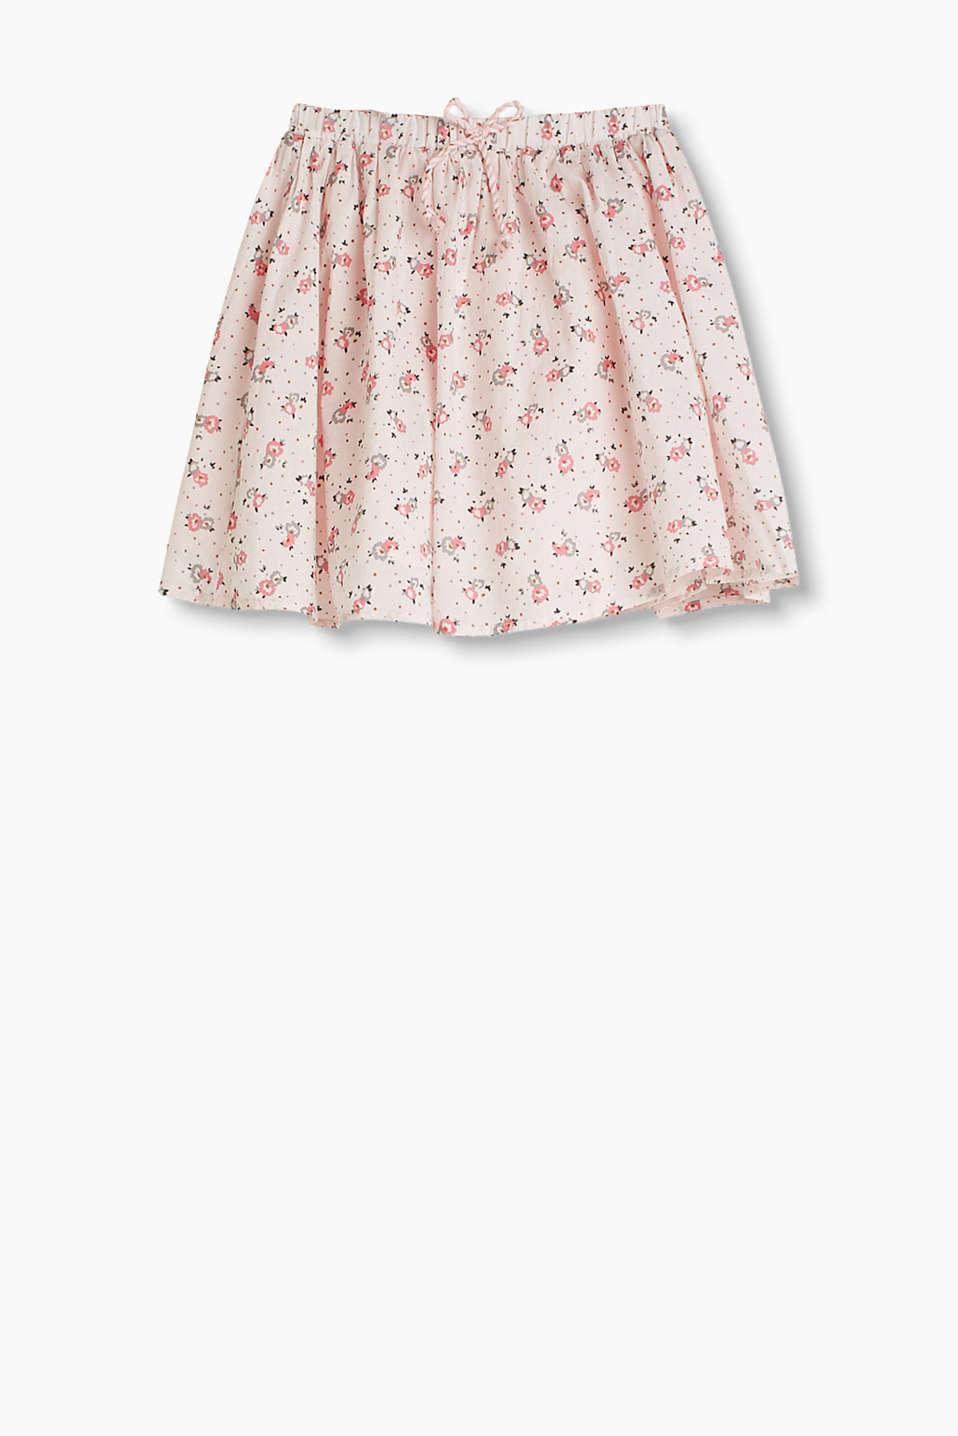 Wide flared floral skirt with an elasticated waistband and cord bow, 100% cotton